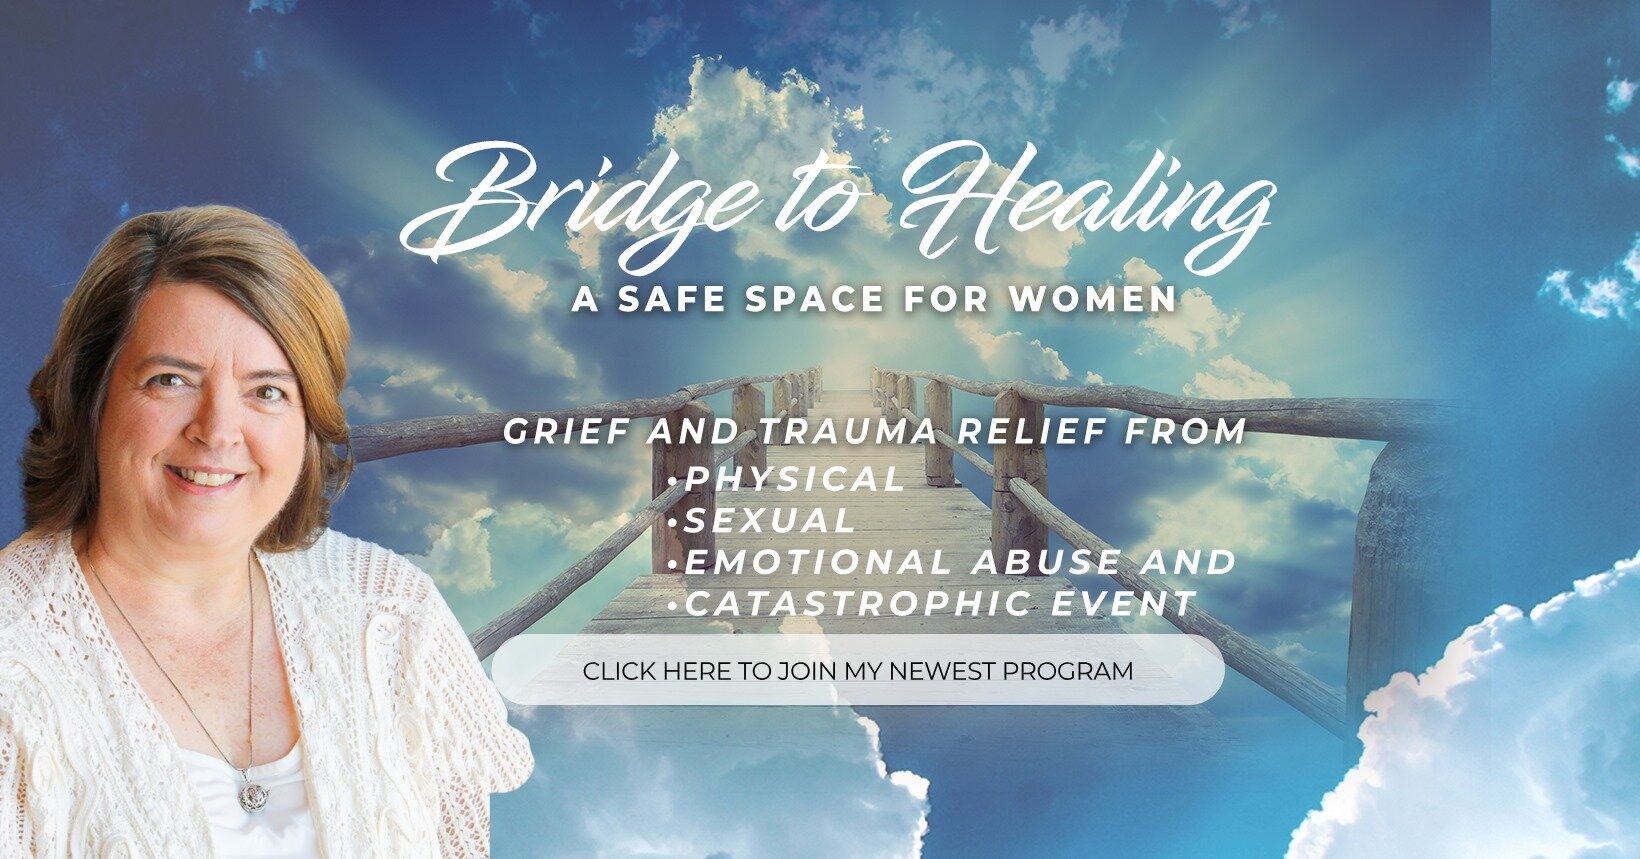 Please join my safe and private Bridge to Healing Community:  https://www.facebook.com/groups/bridgetohealing/